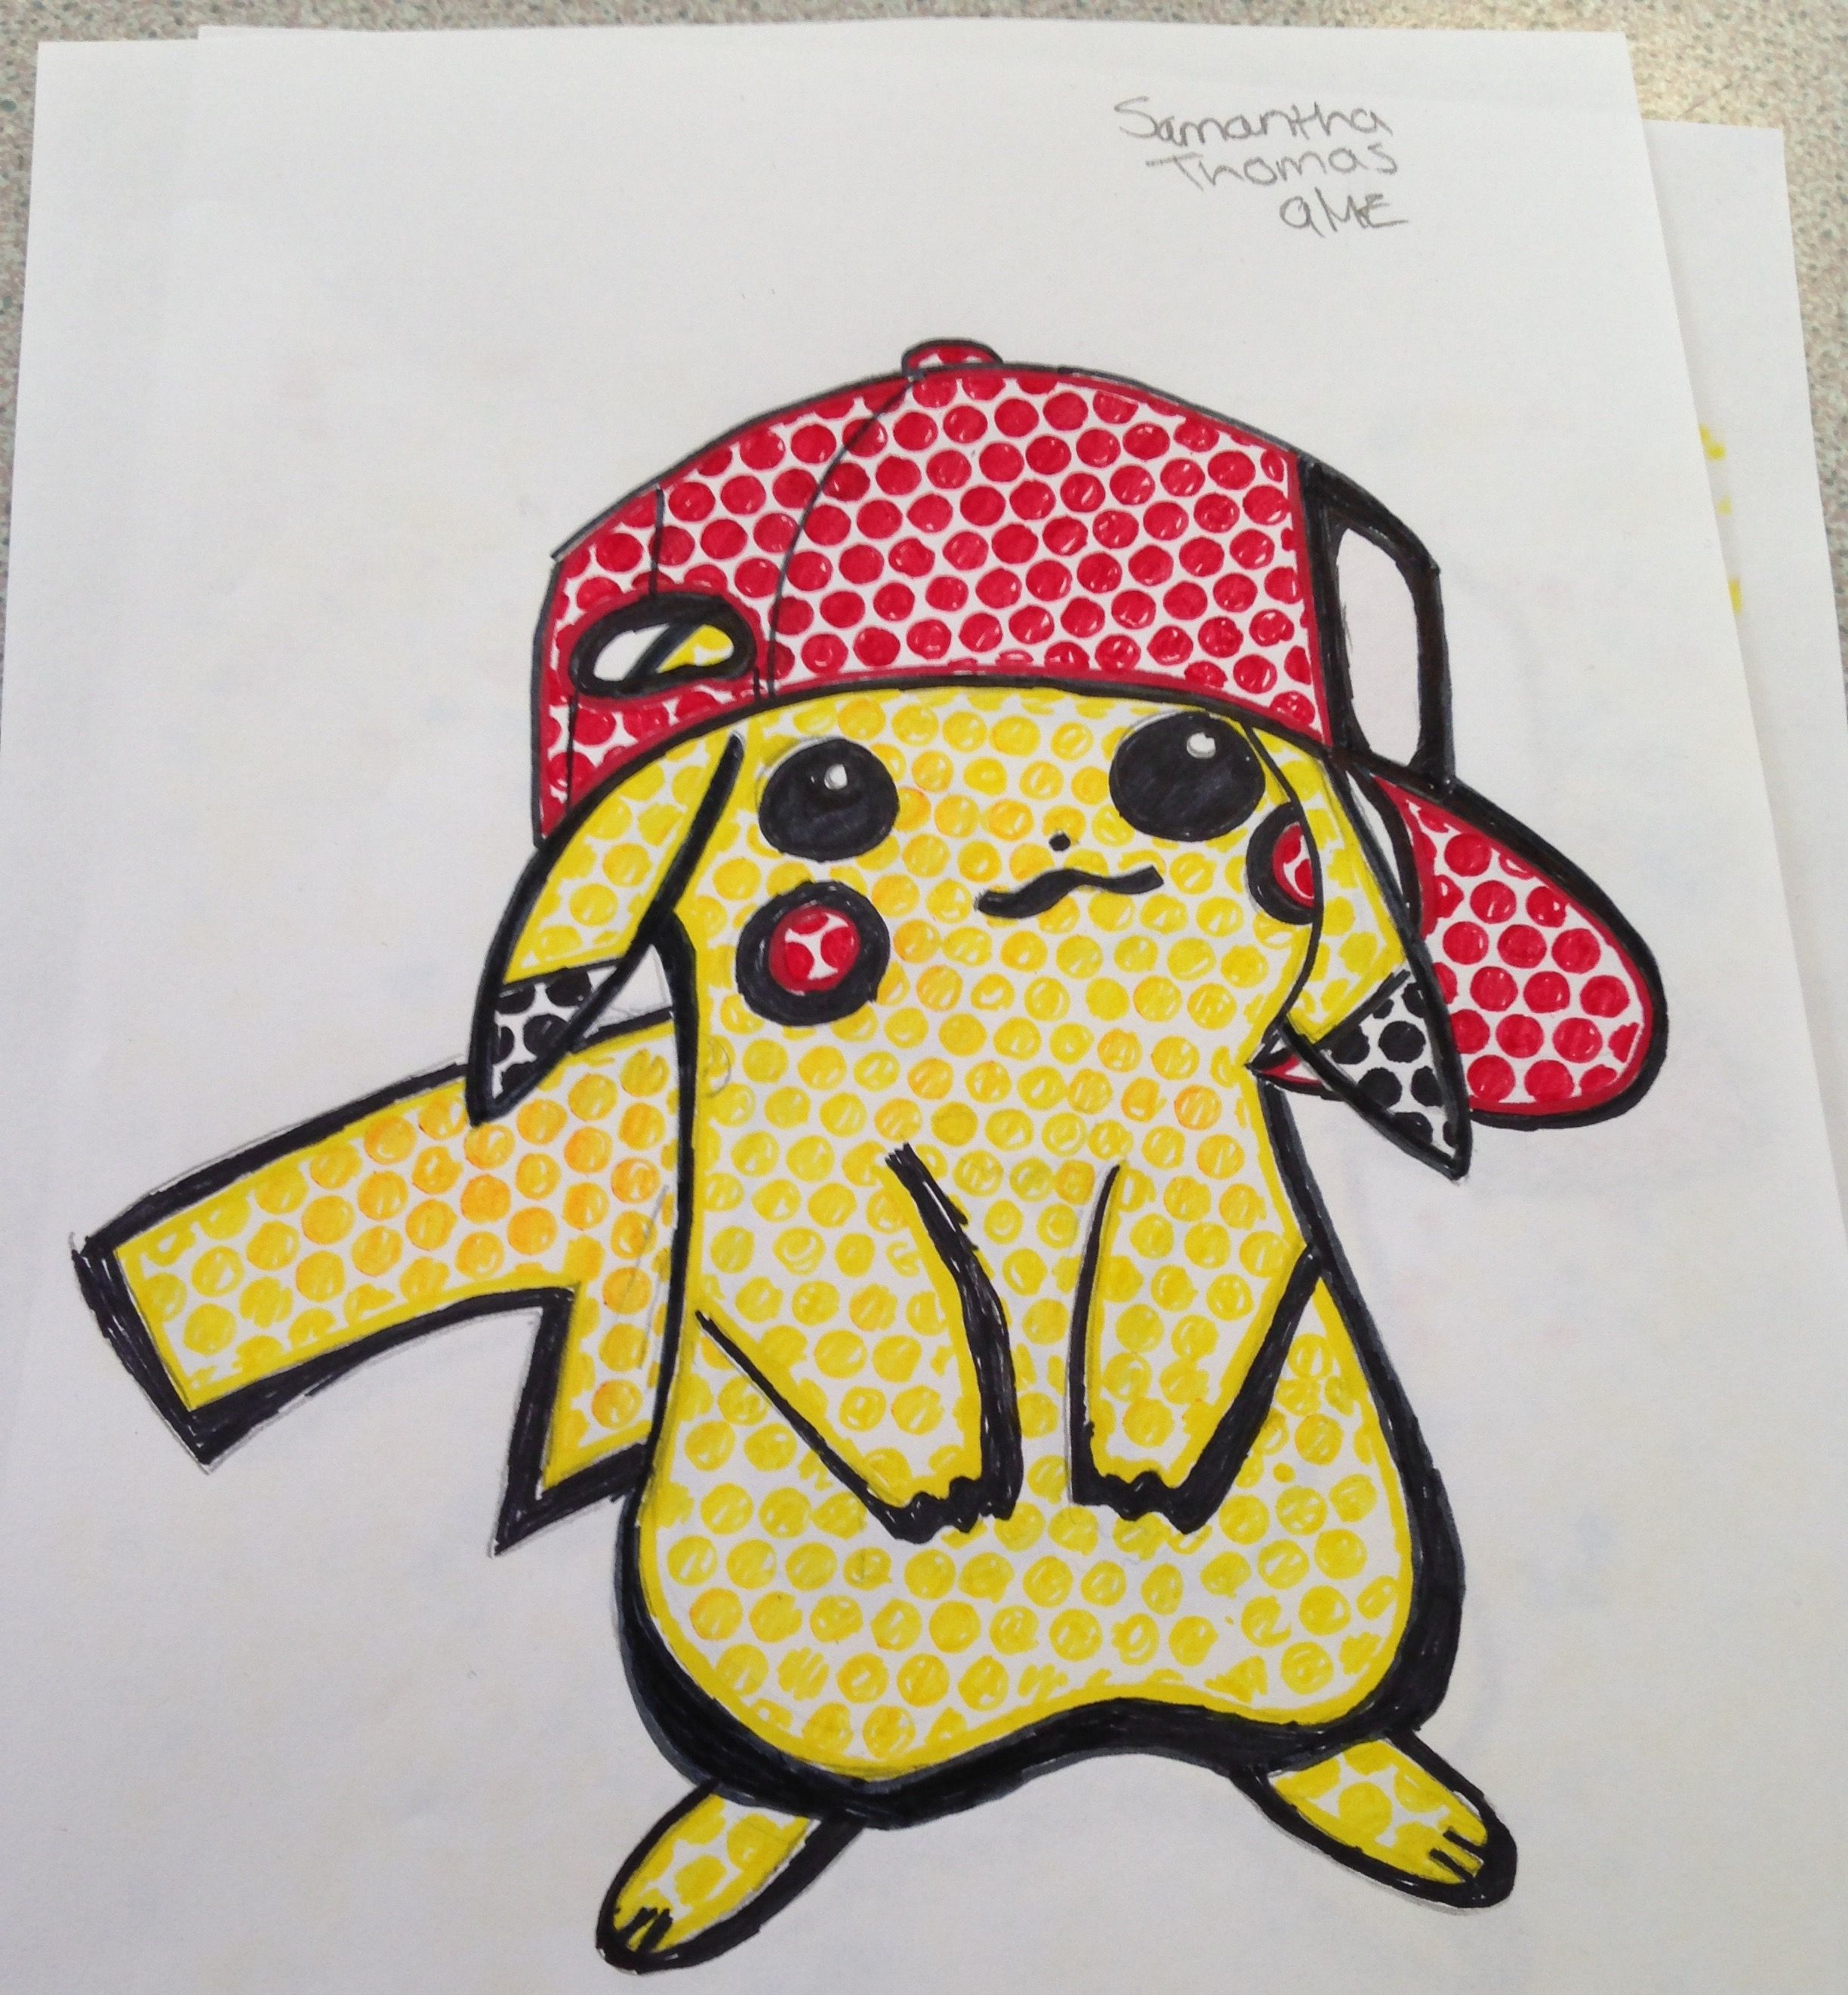 My attempt of drawing pikachu